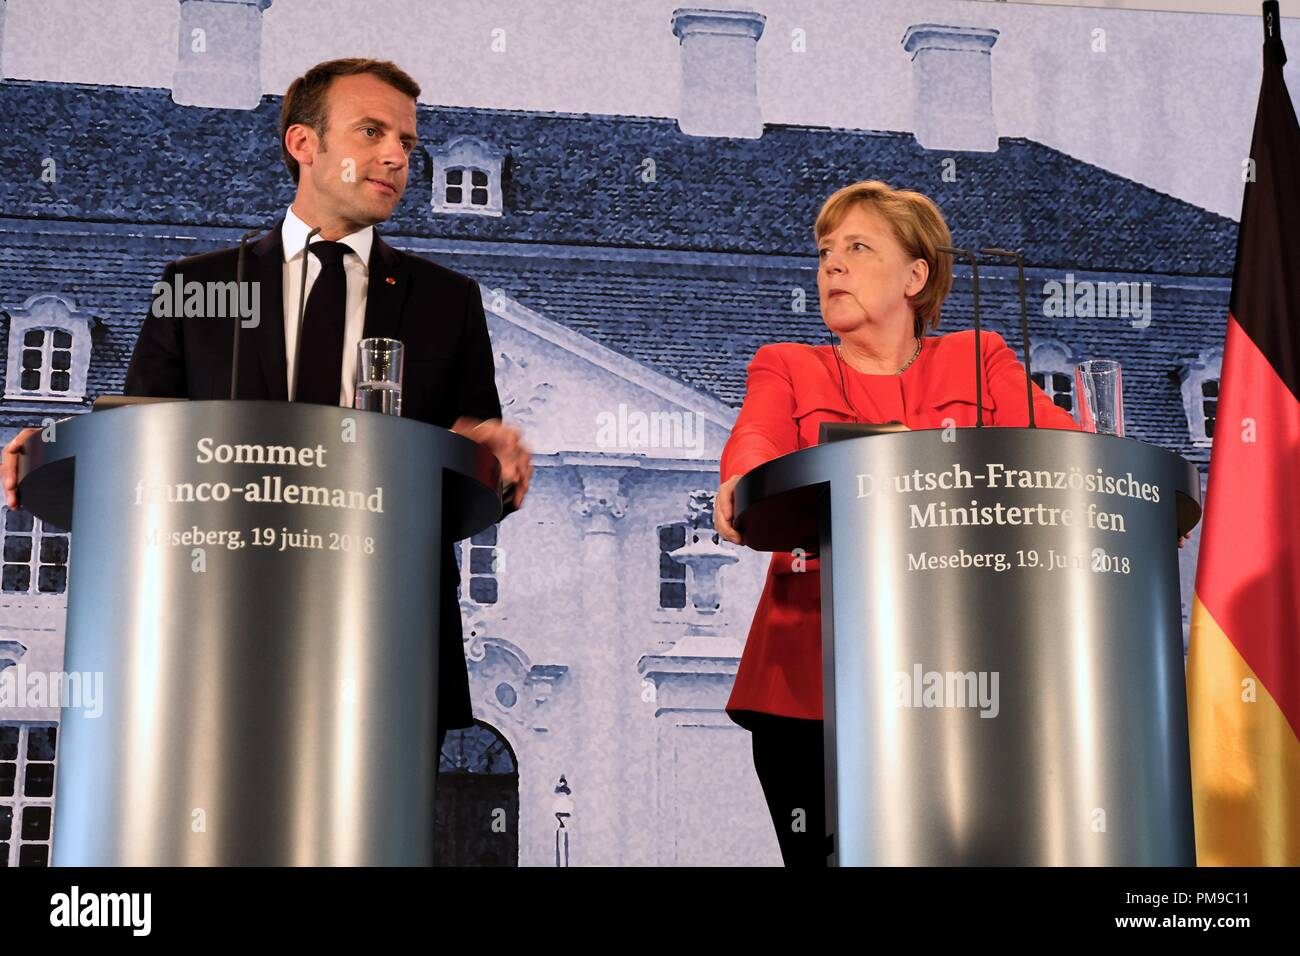 Berlin, Germany. 19th June, 2018. President of the French Republic Emmanuel Jean-Michel Frédéric Macron holds a press conference together with German Chancellor Angela Merkel. Credit: Lorena De La Cuesta/SOPA Images/ZUMA Wire/Alamy Live News Stock Photo